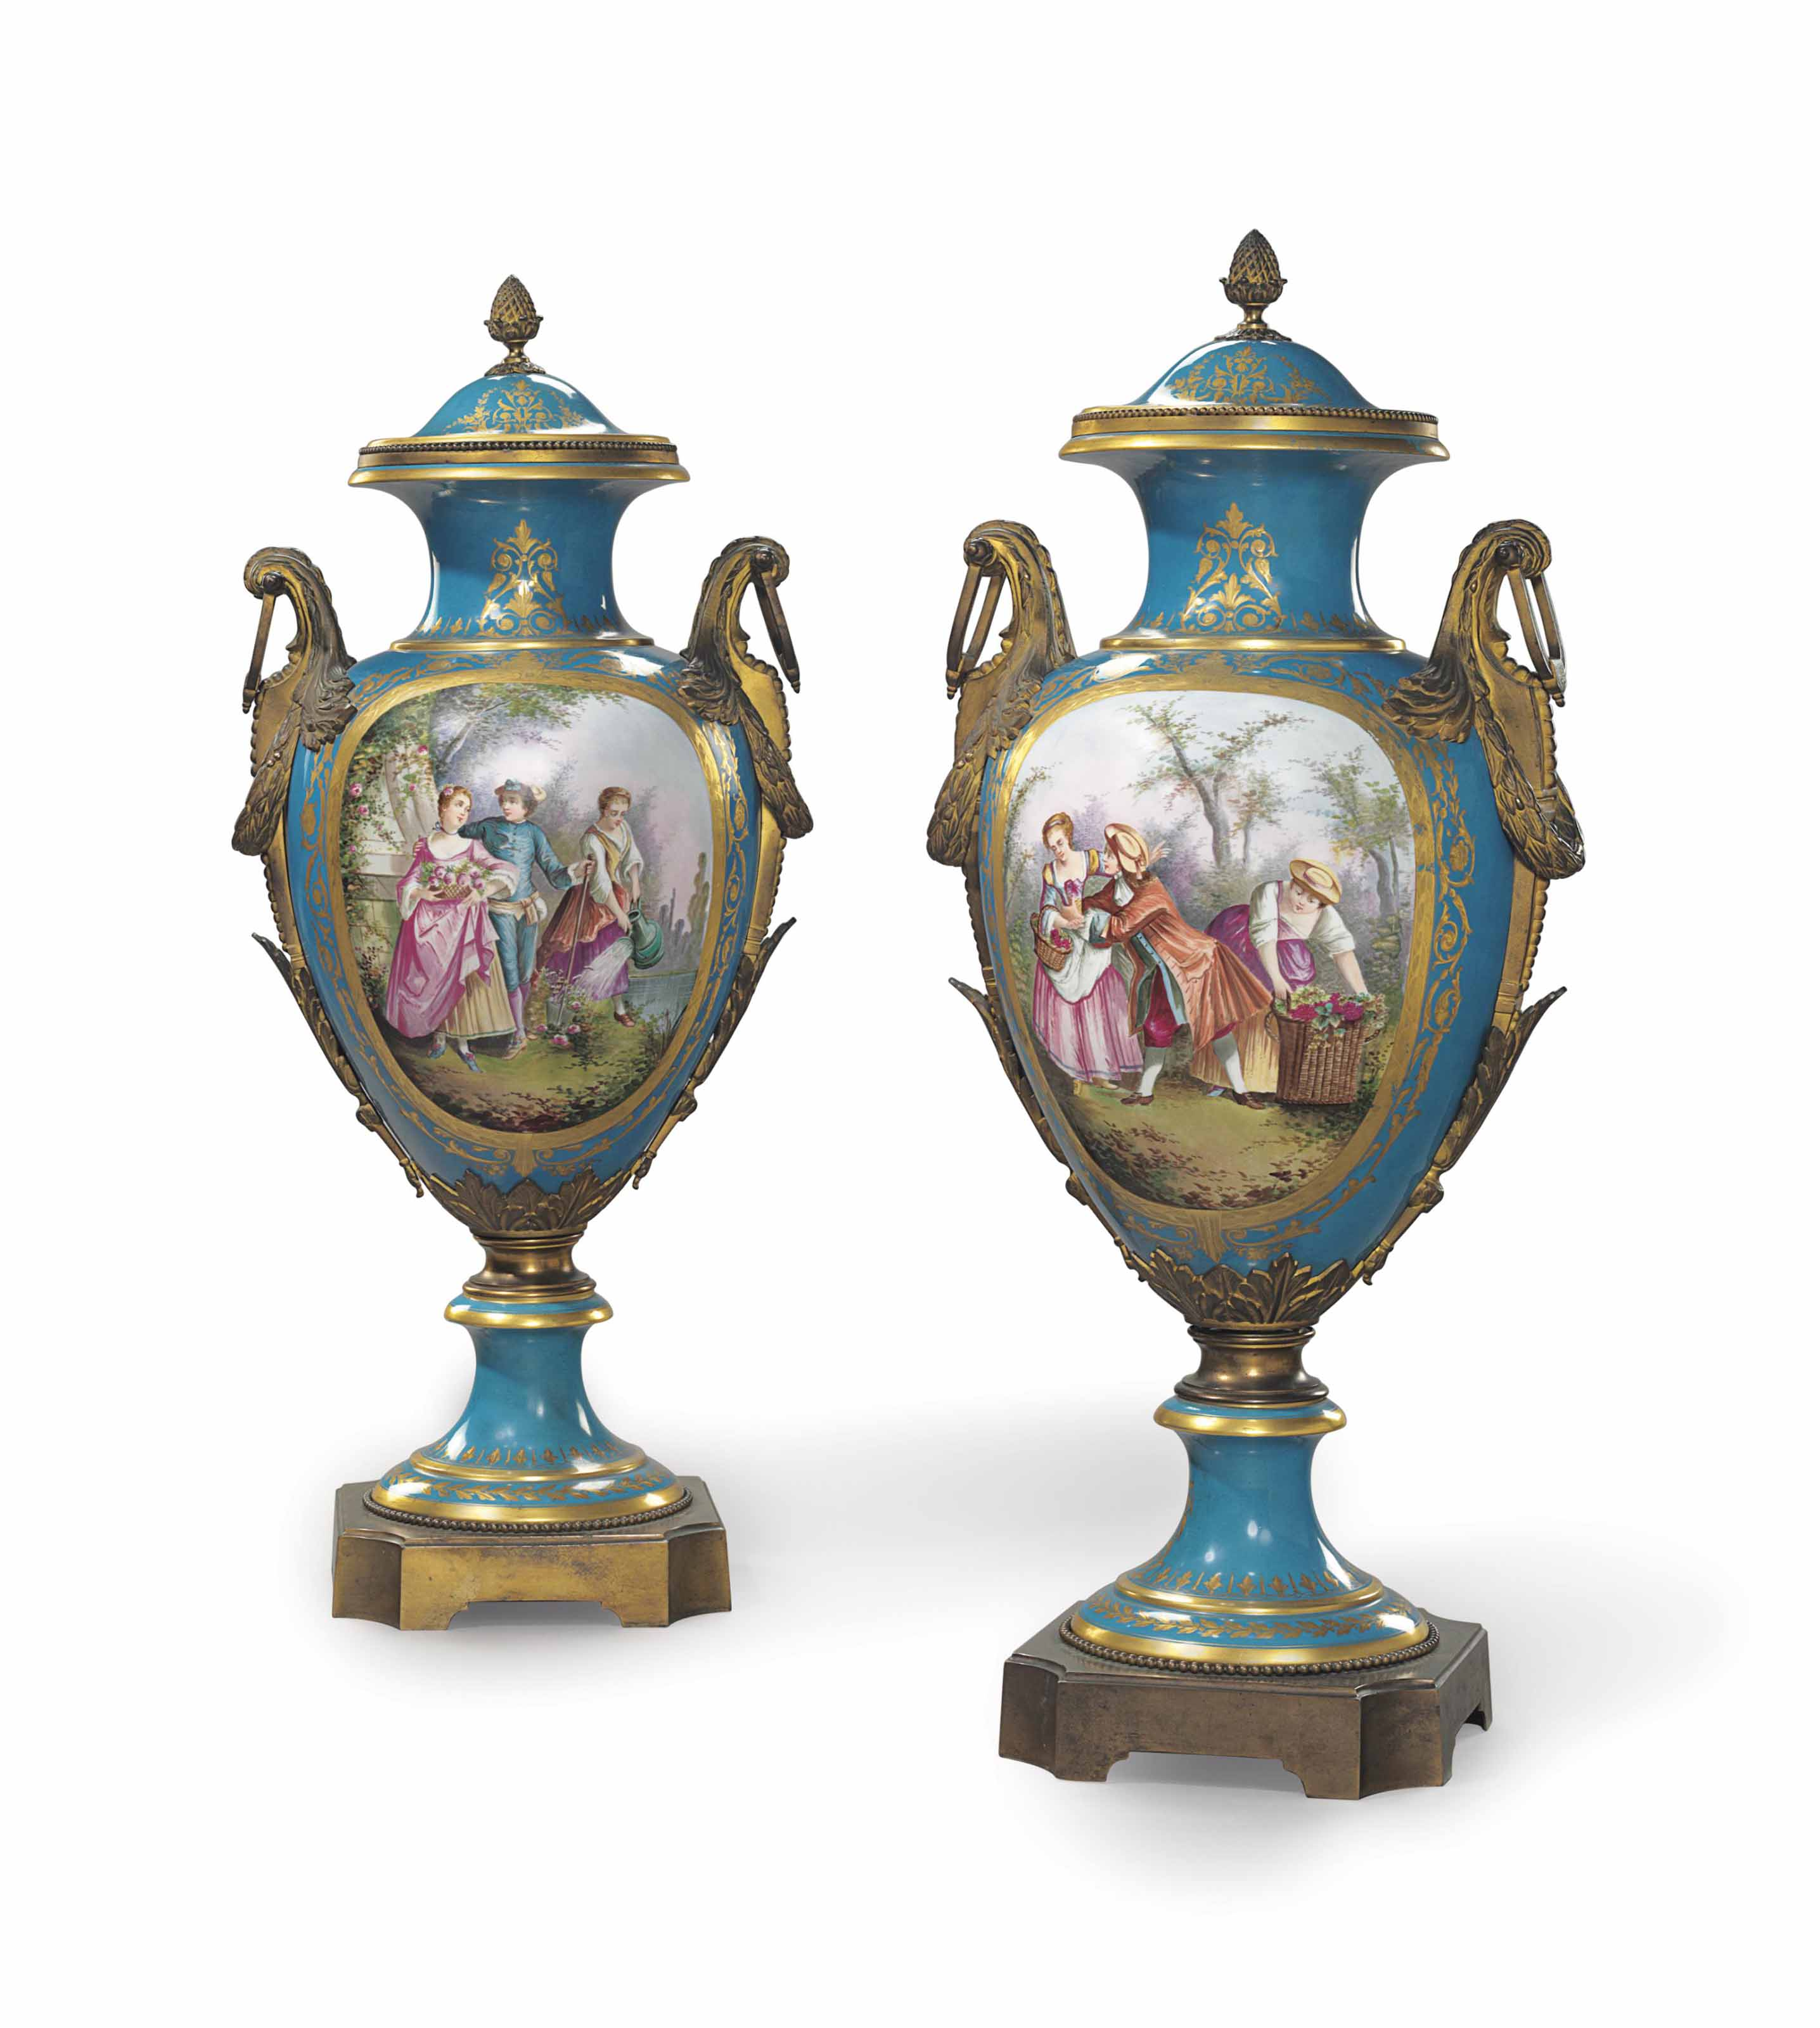 A PAIR OF ORMOLU-MOUNTED SEVRES STYLE PORCELAIN TURQUOISE